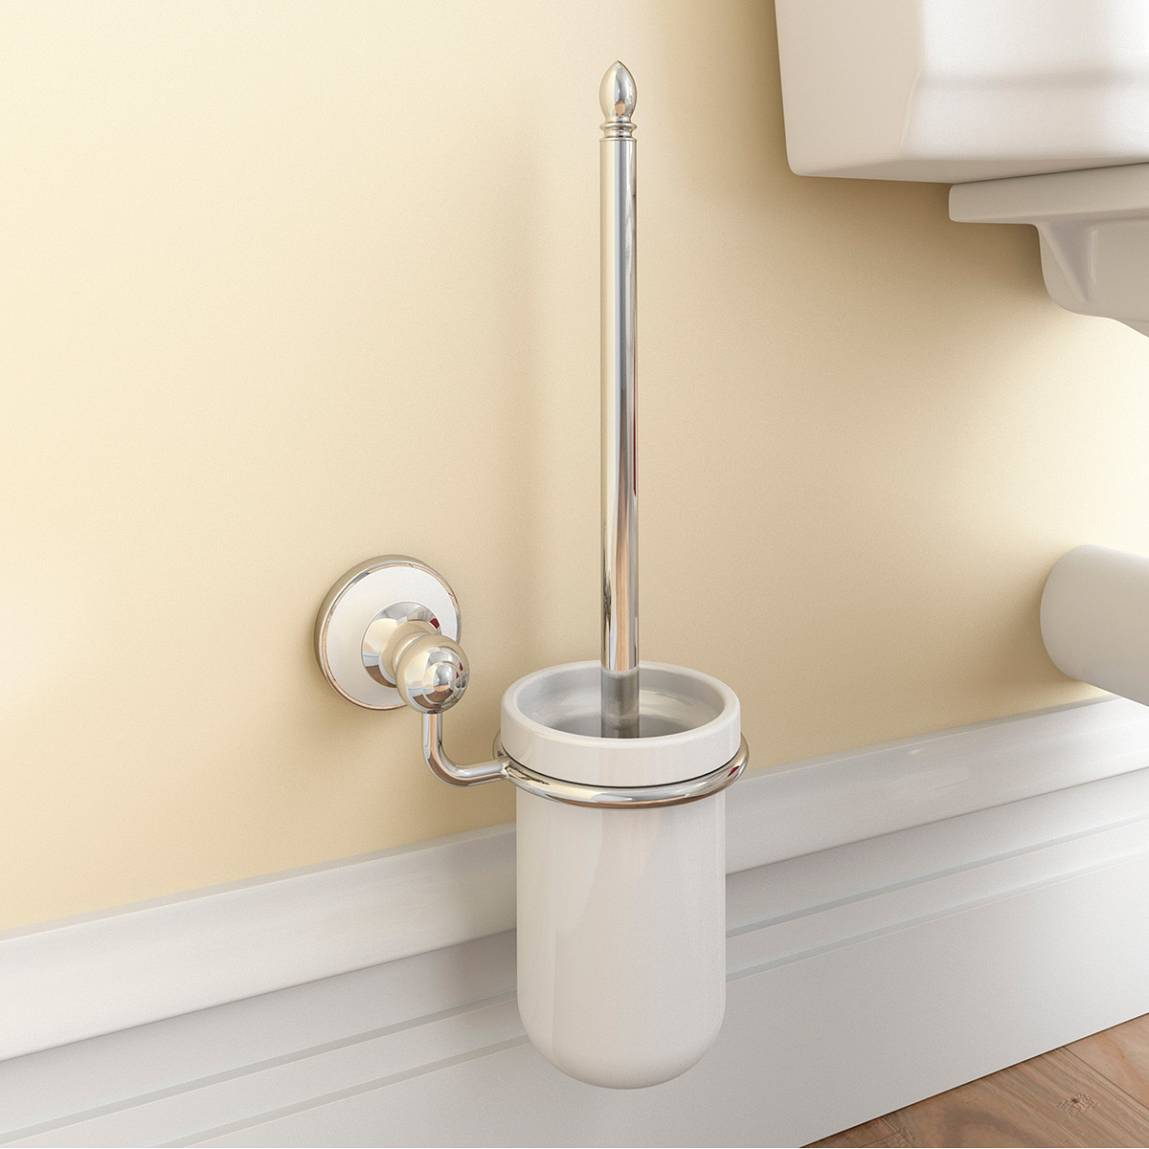 Ceramic Toilet Brush Holder Winchester Toilet Brush And Ceramic Holder Victoriaplum